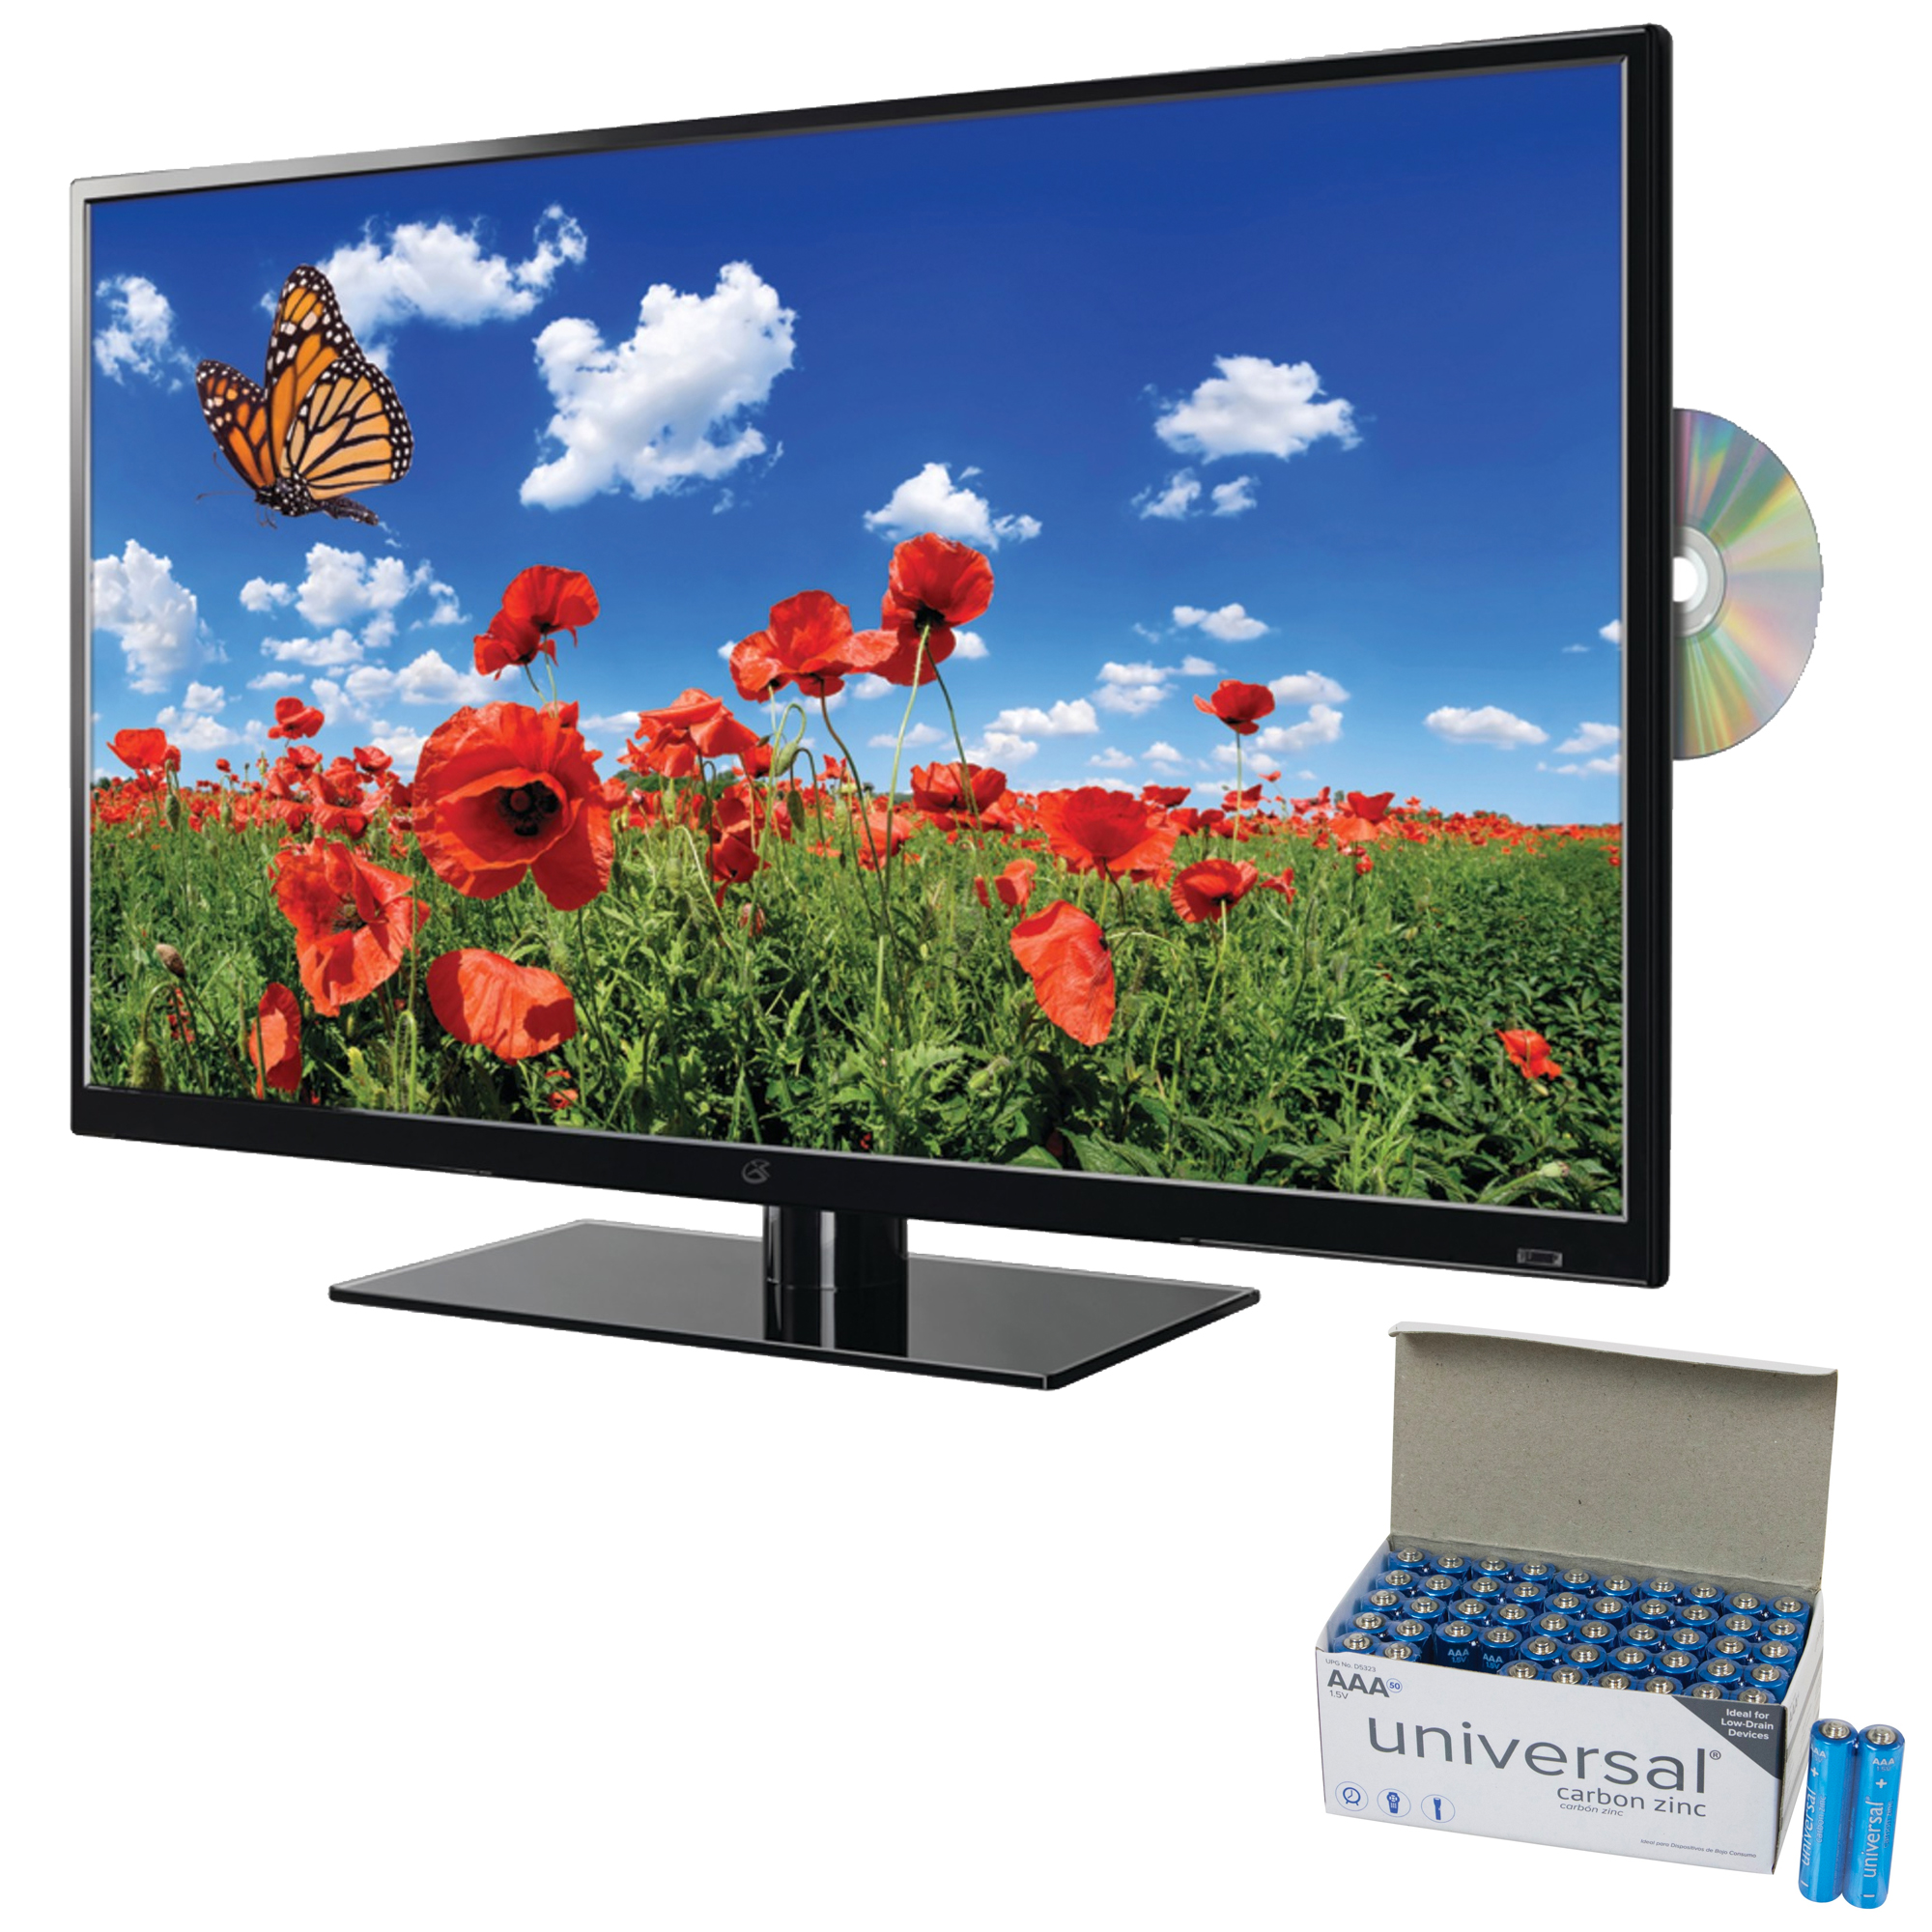 "GPX TDE3274BP 32"" 1080p LED TV/DVD Combination & UPG AAA 50 PK"